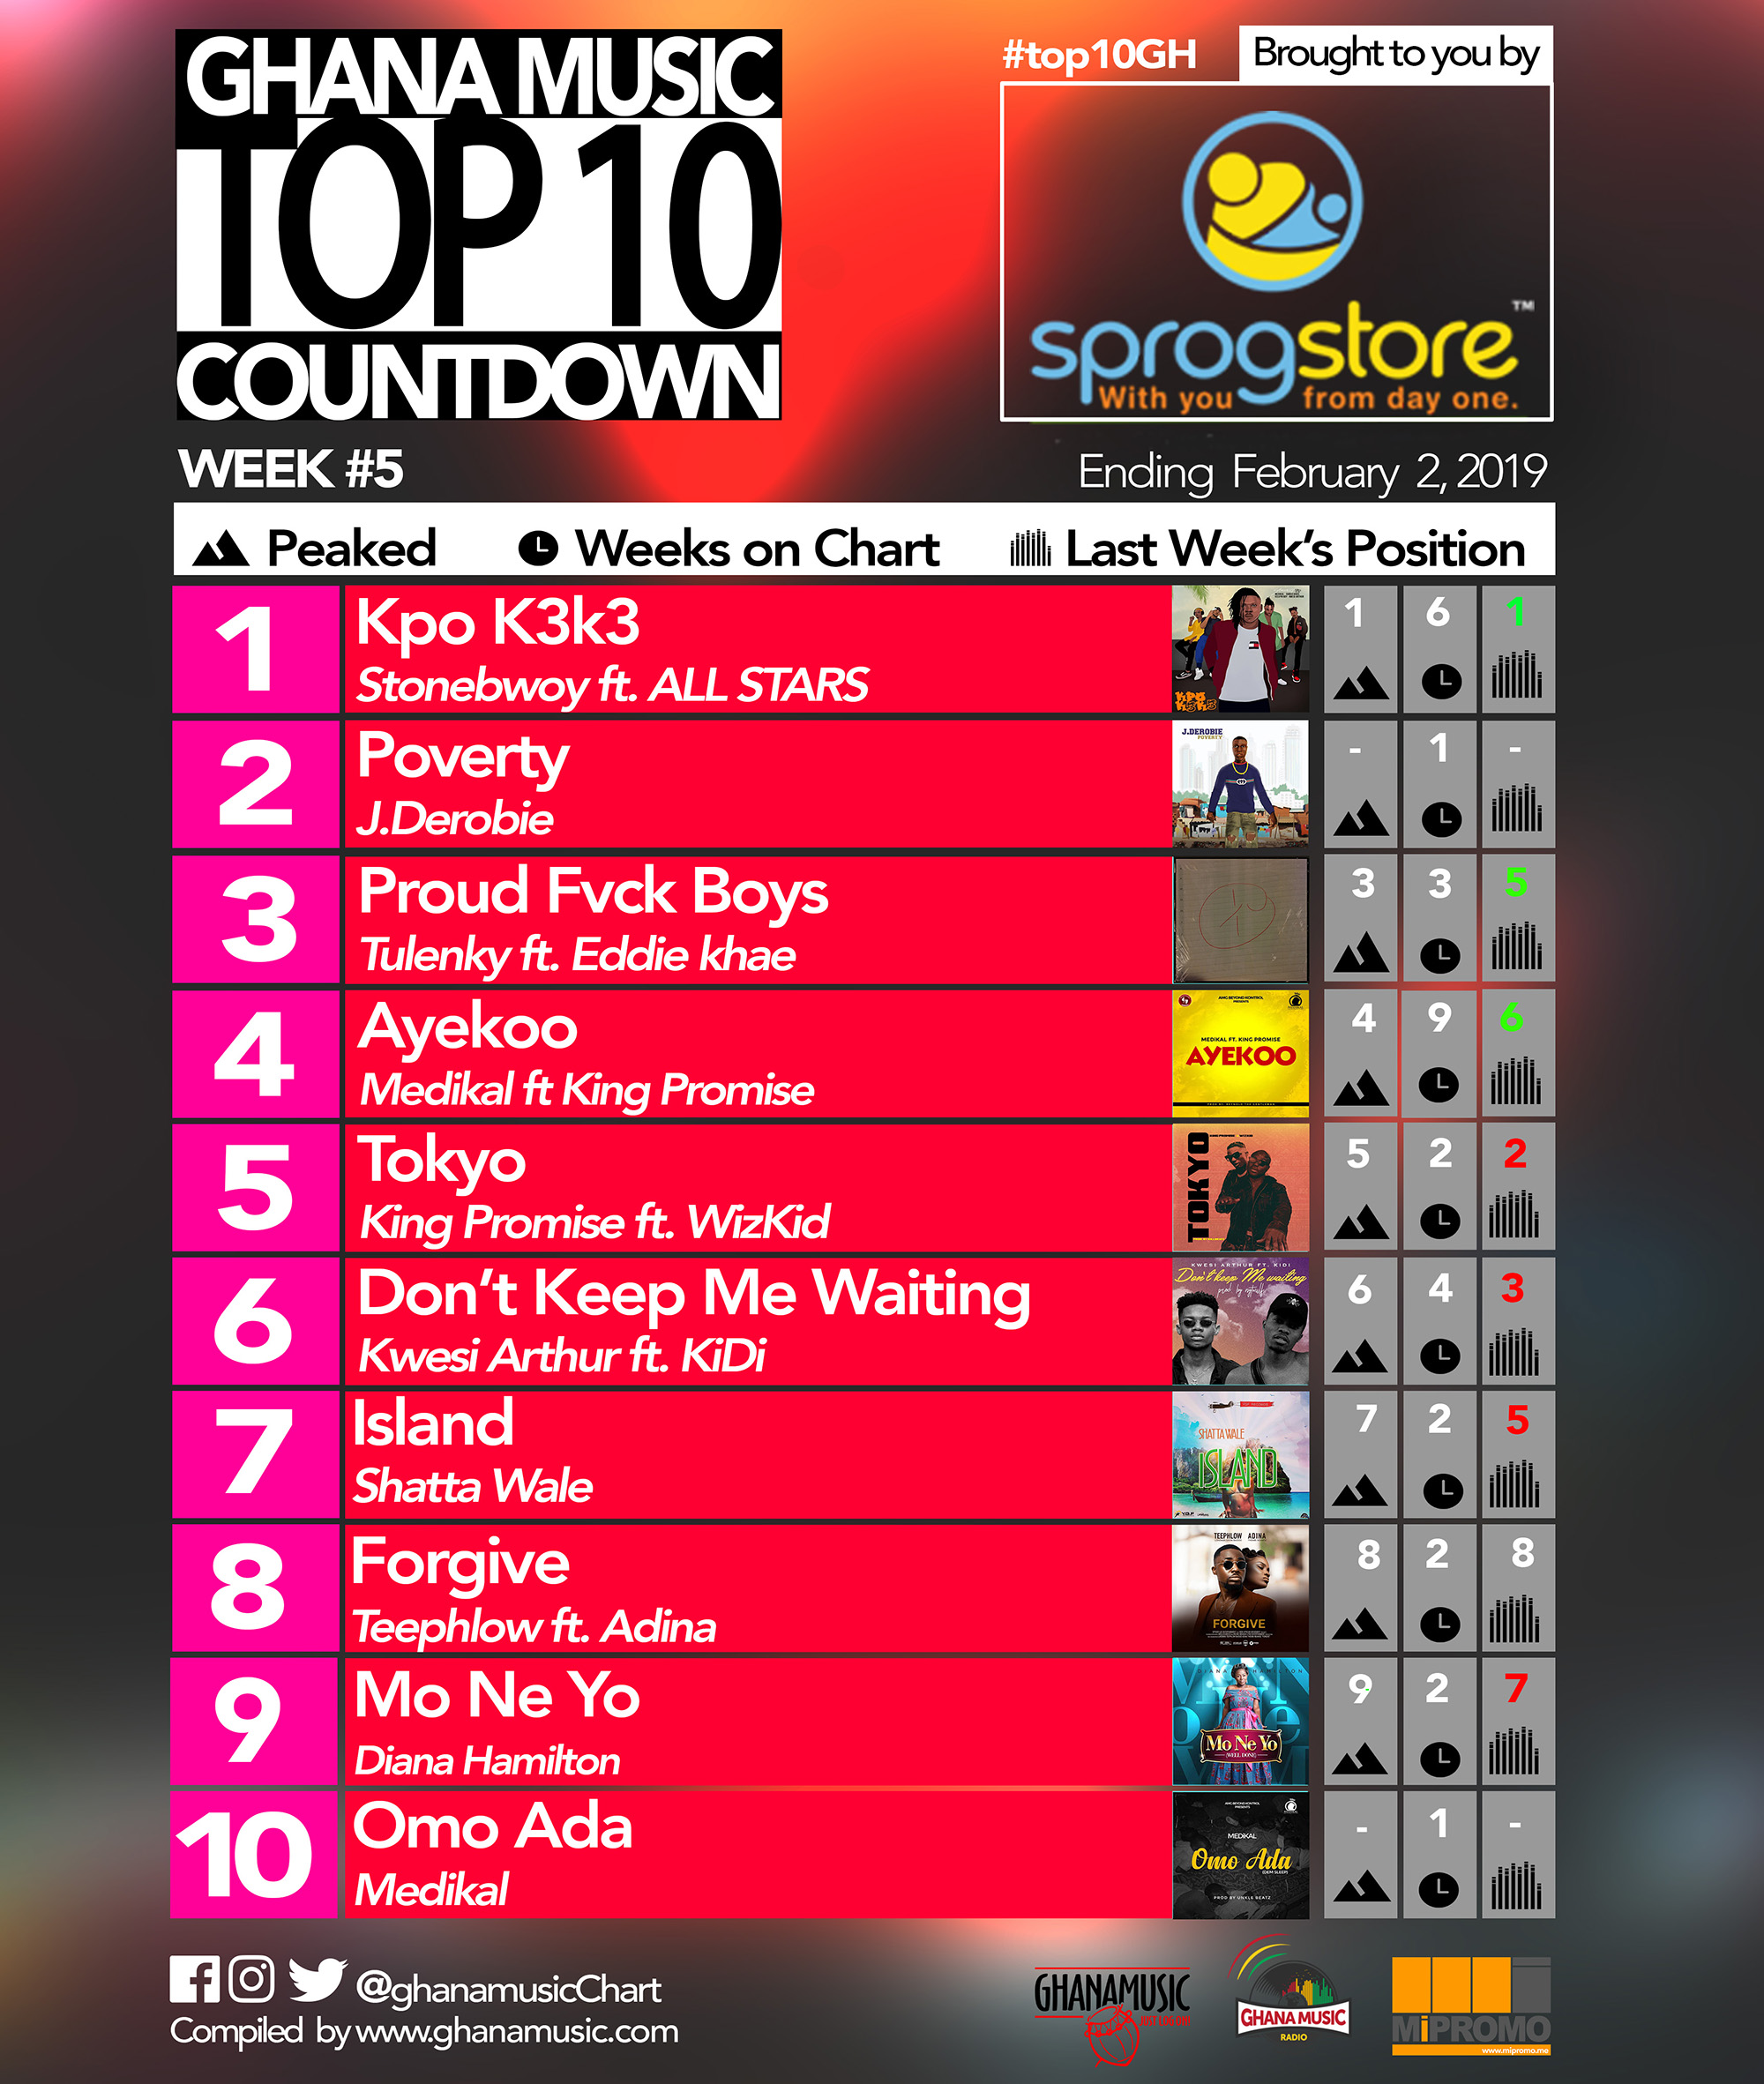 Week #5: Ghana Music Top 10 Countdown